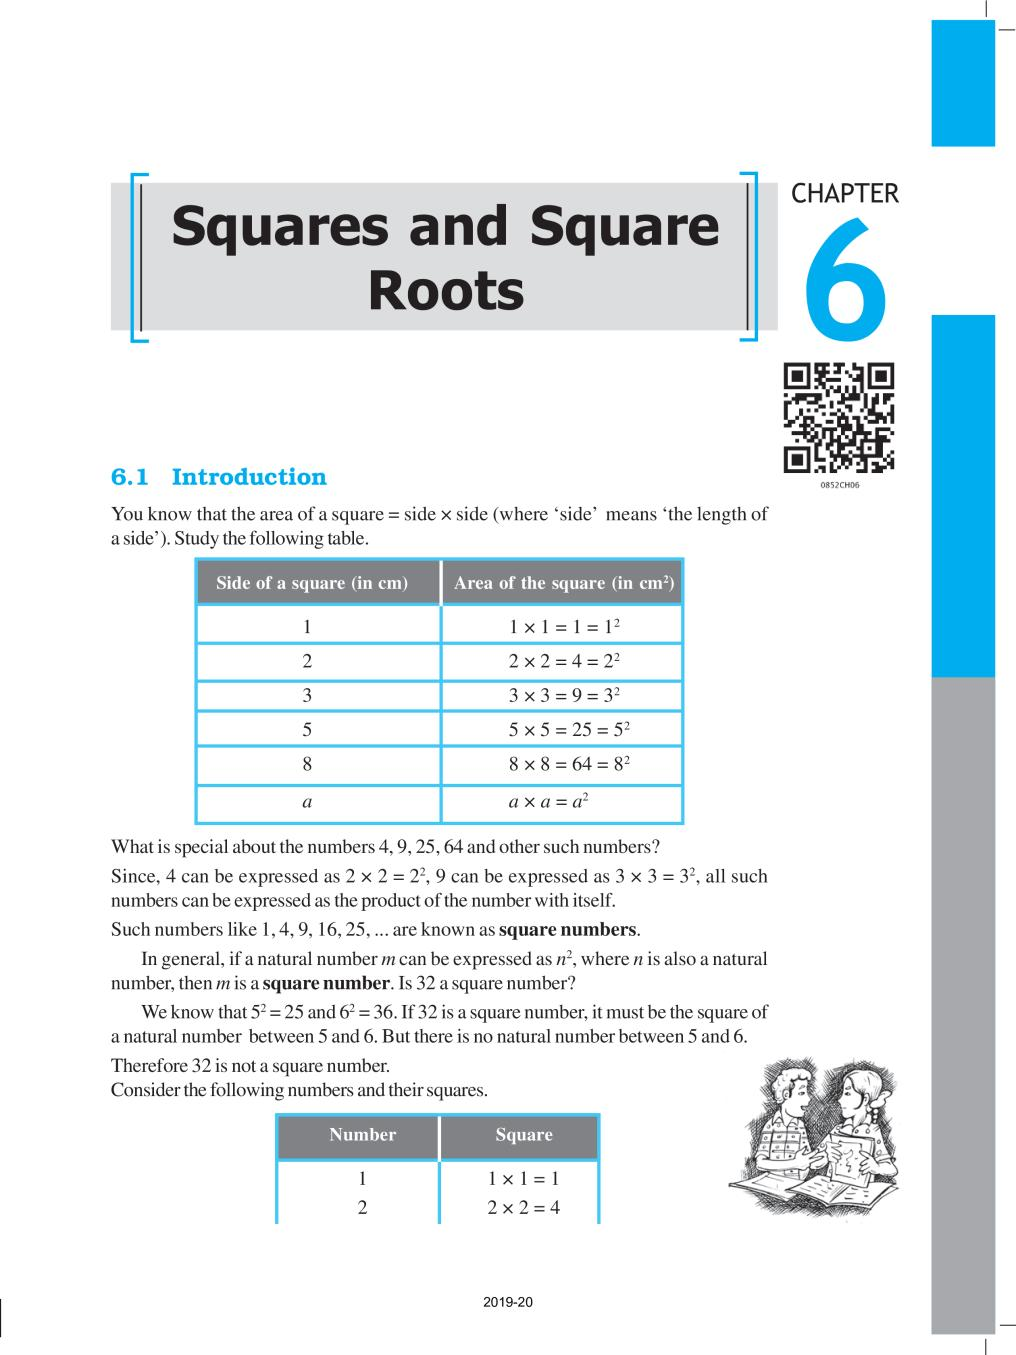 NCERT Book Class 8 Maths Chapter 6 Squares and Square Roots